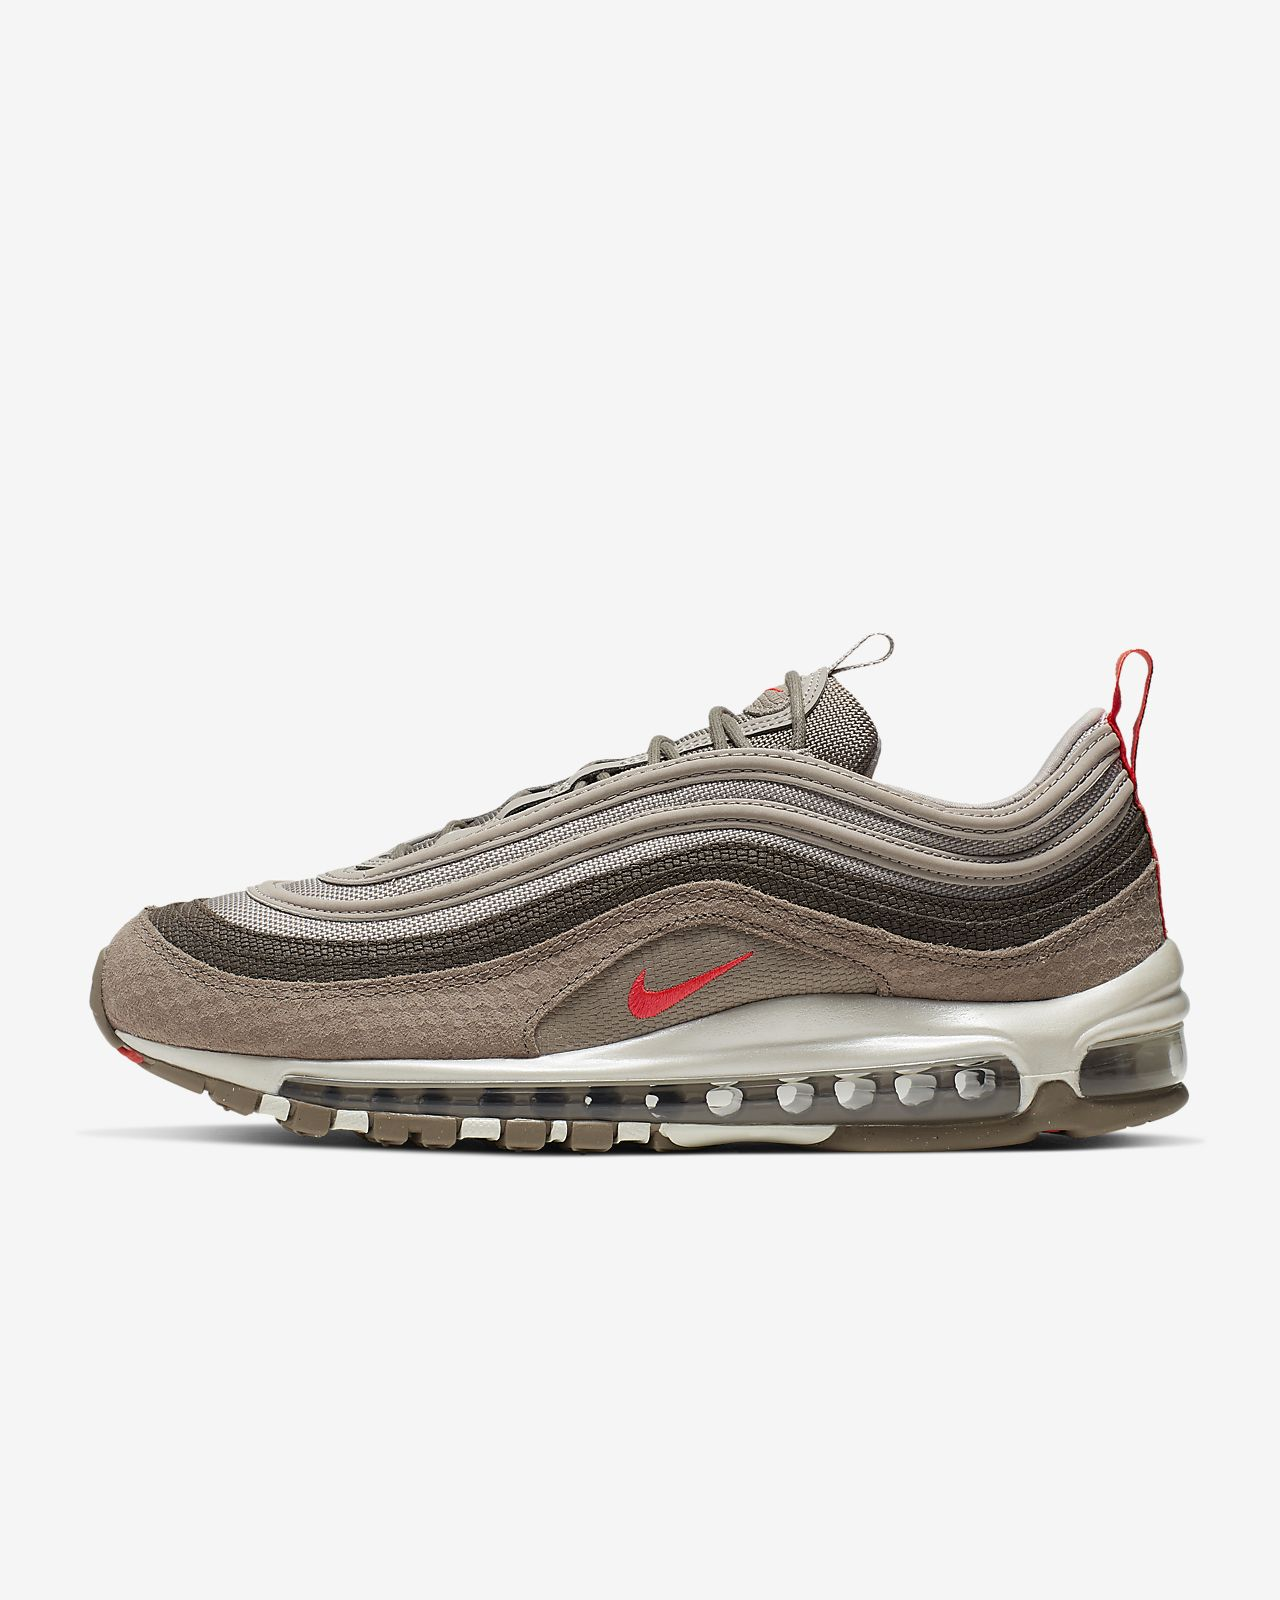 Shoe Men's Premium Max Nike Air 97 sQrdth